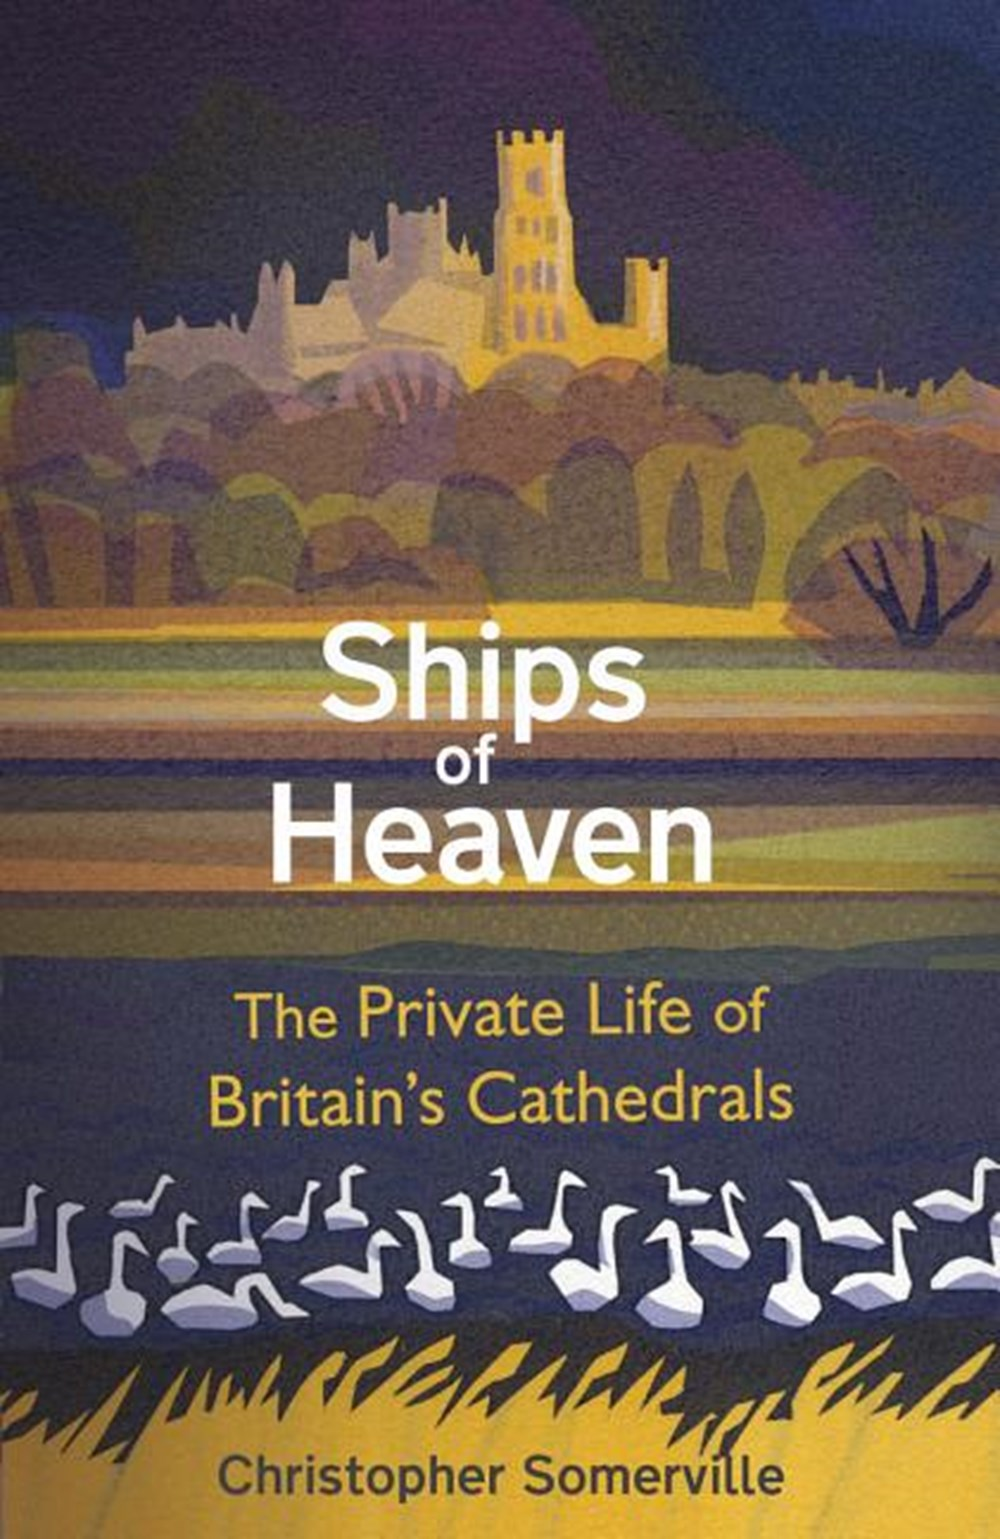 Ships of Heaven The Private Life of Britain's Cathedrals